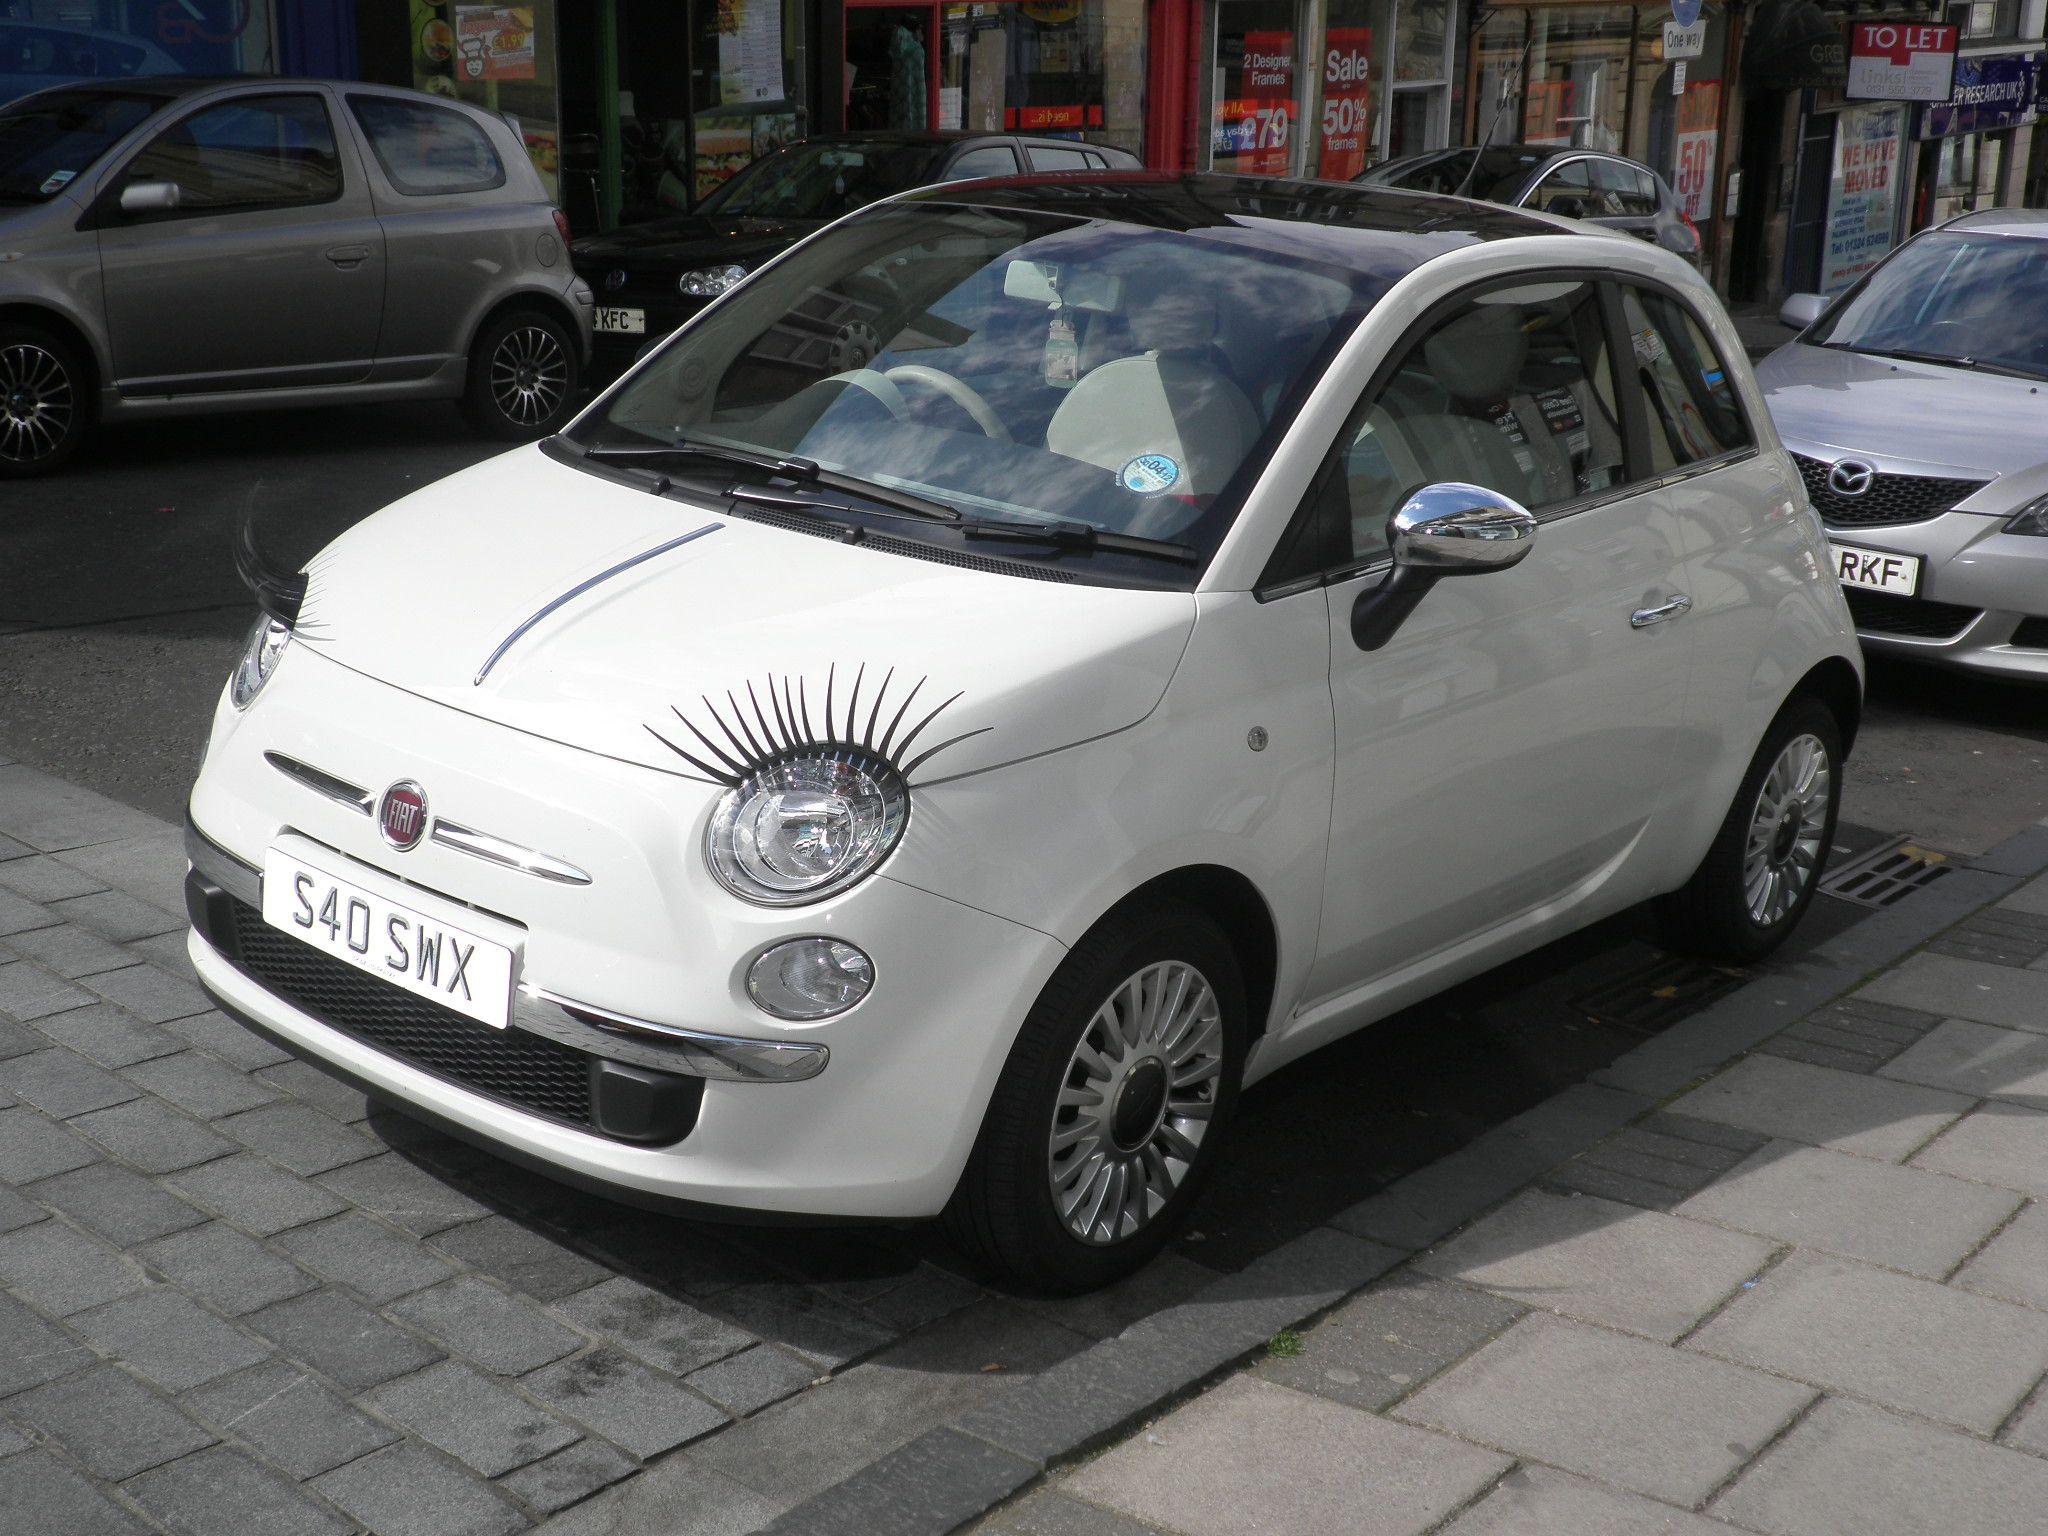 a525d87bd0 Fiat 500 with eyelashes. | Love my FIAT 500! | Fiat, Fiat 500, New fiat